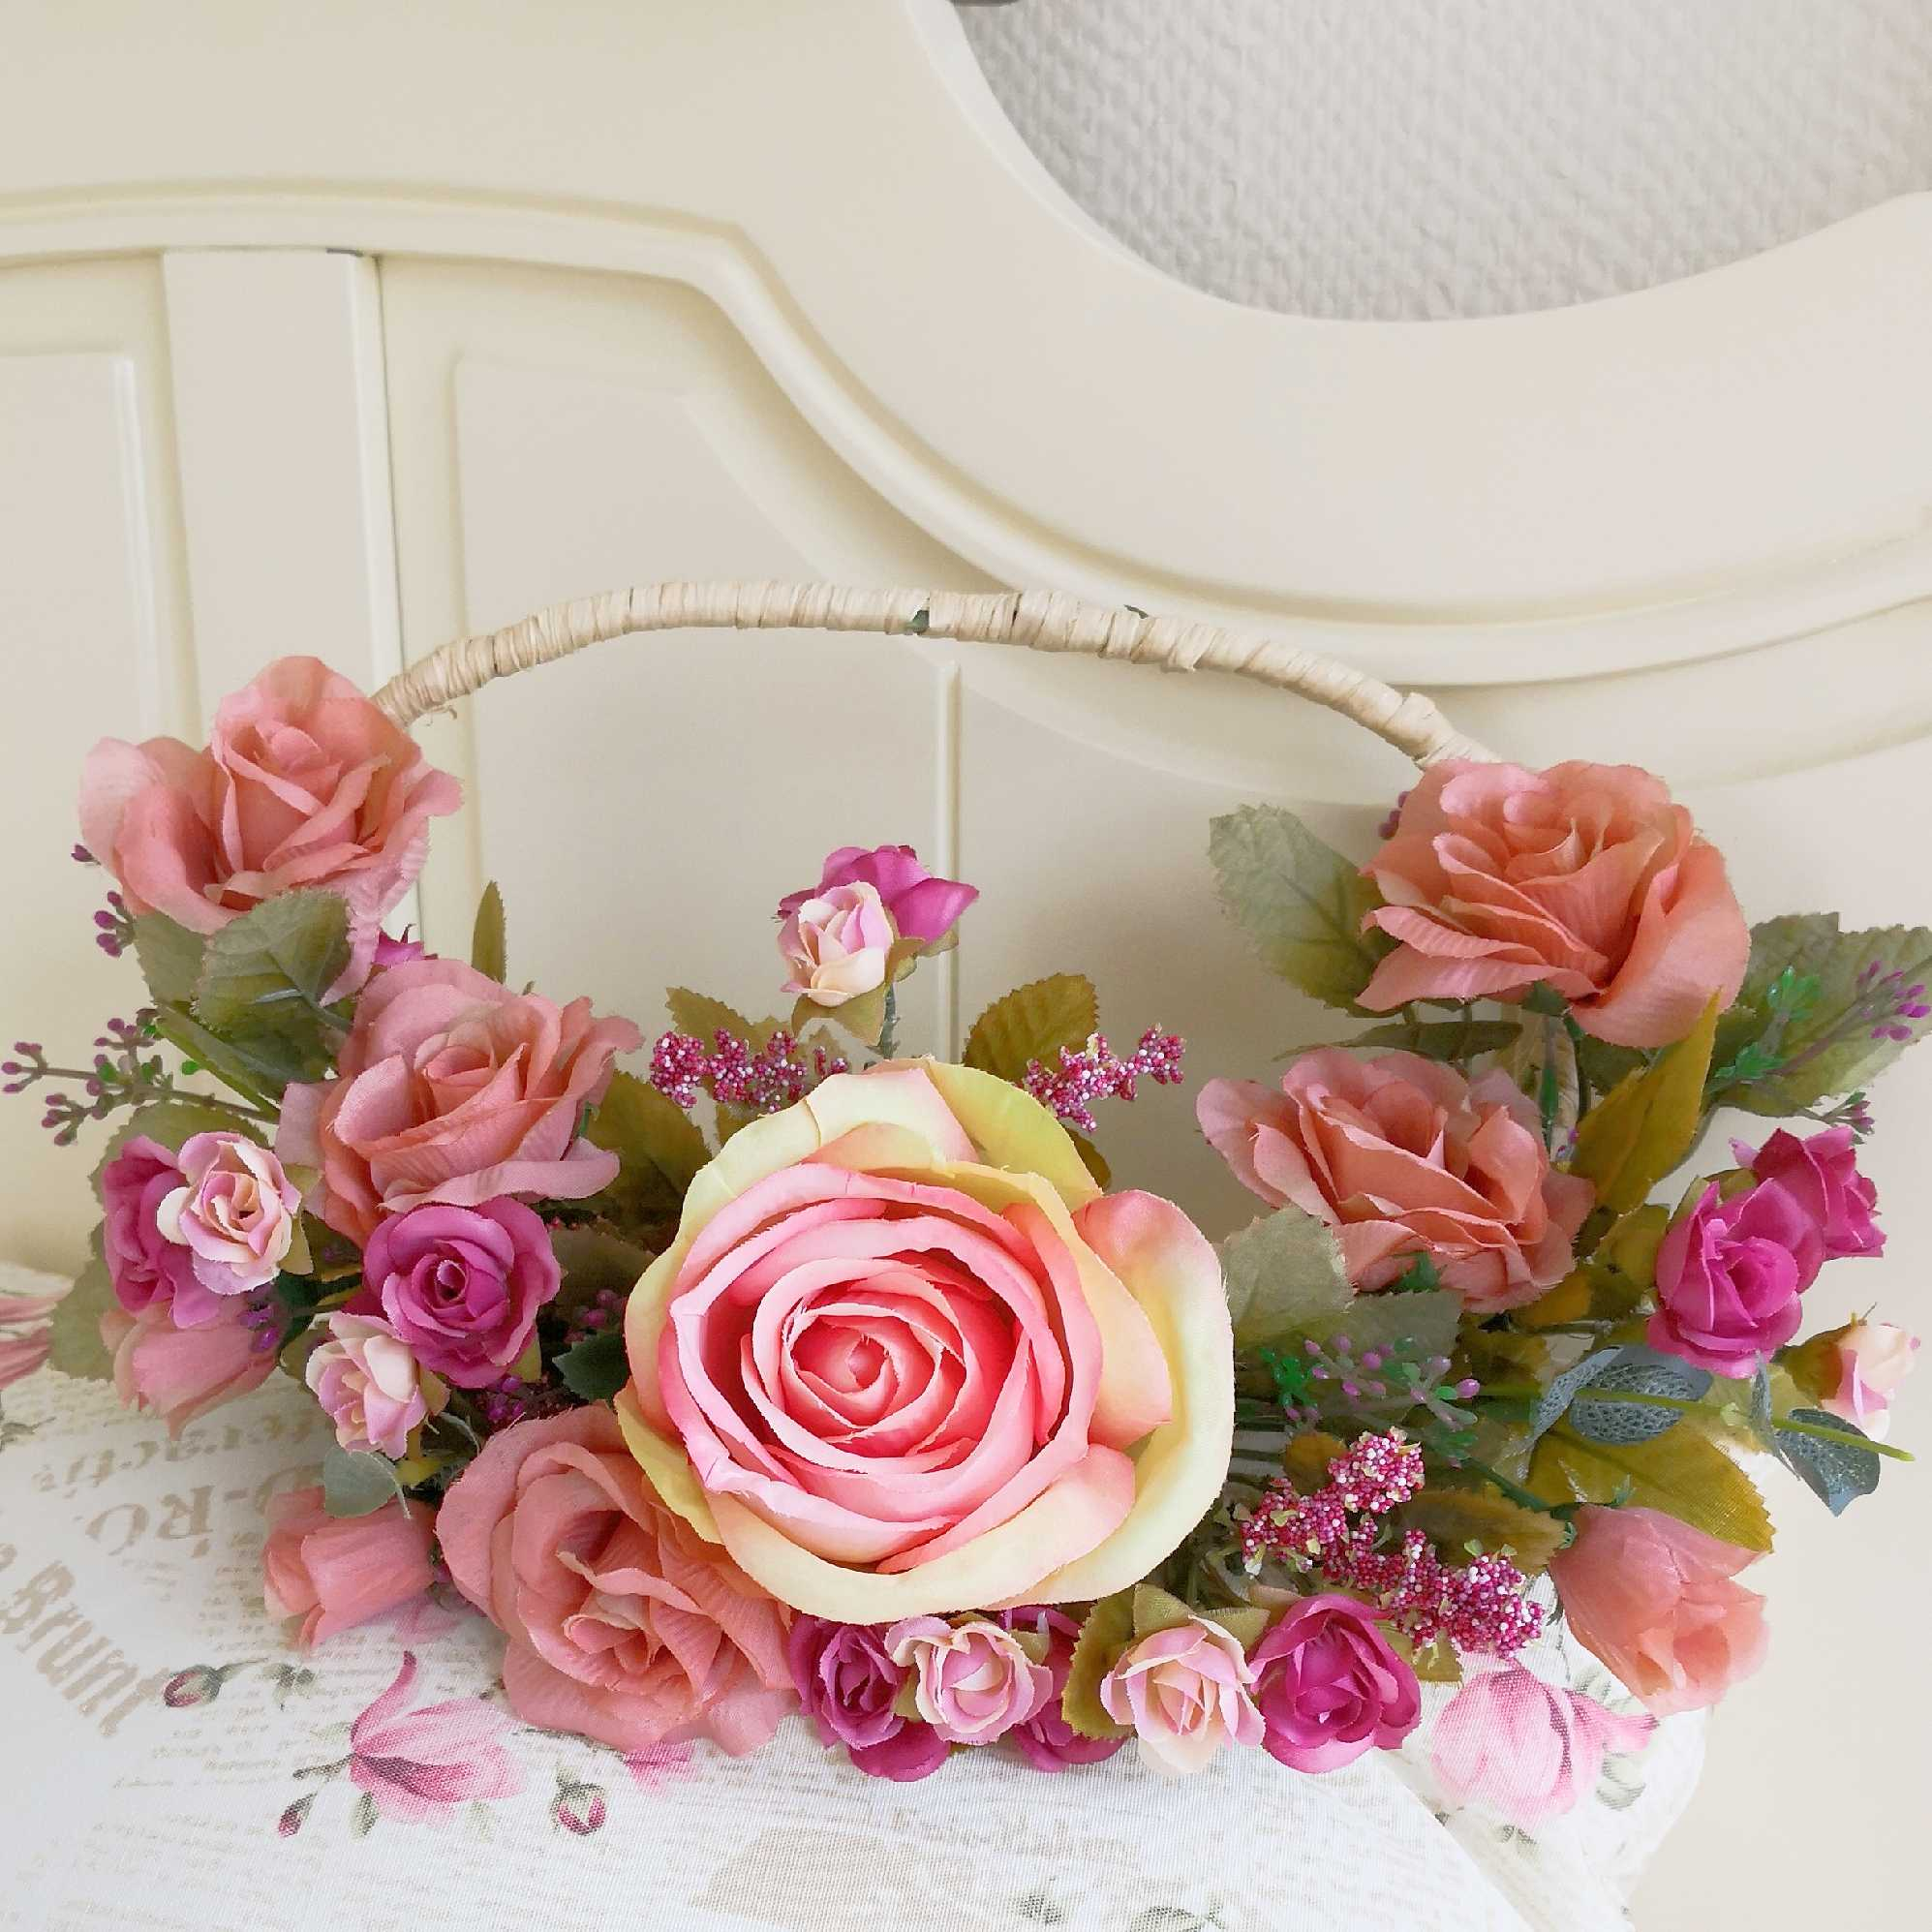 Silk flower artificial flower retro style new house wedding room boudoir home floral wreath door decoration door hanging wall decoration hand flower road guide flower